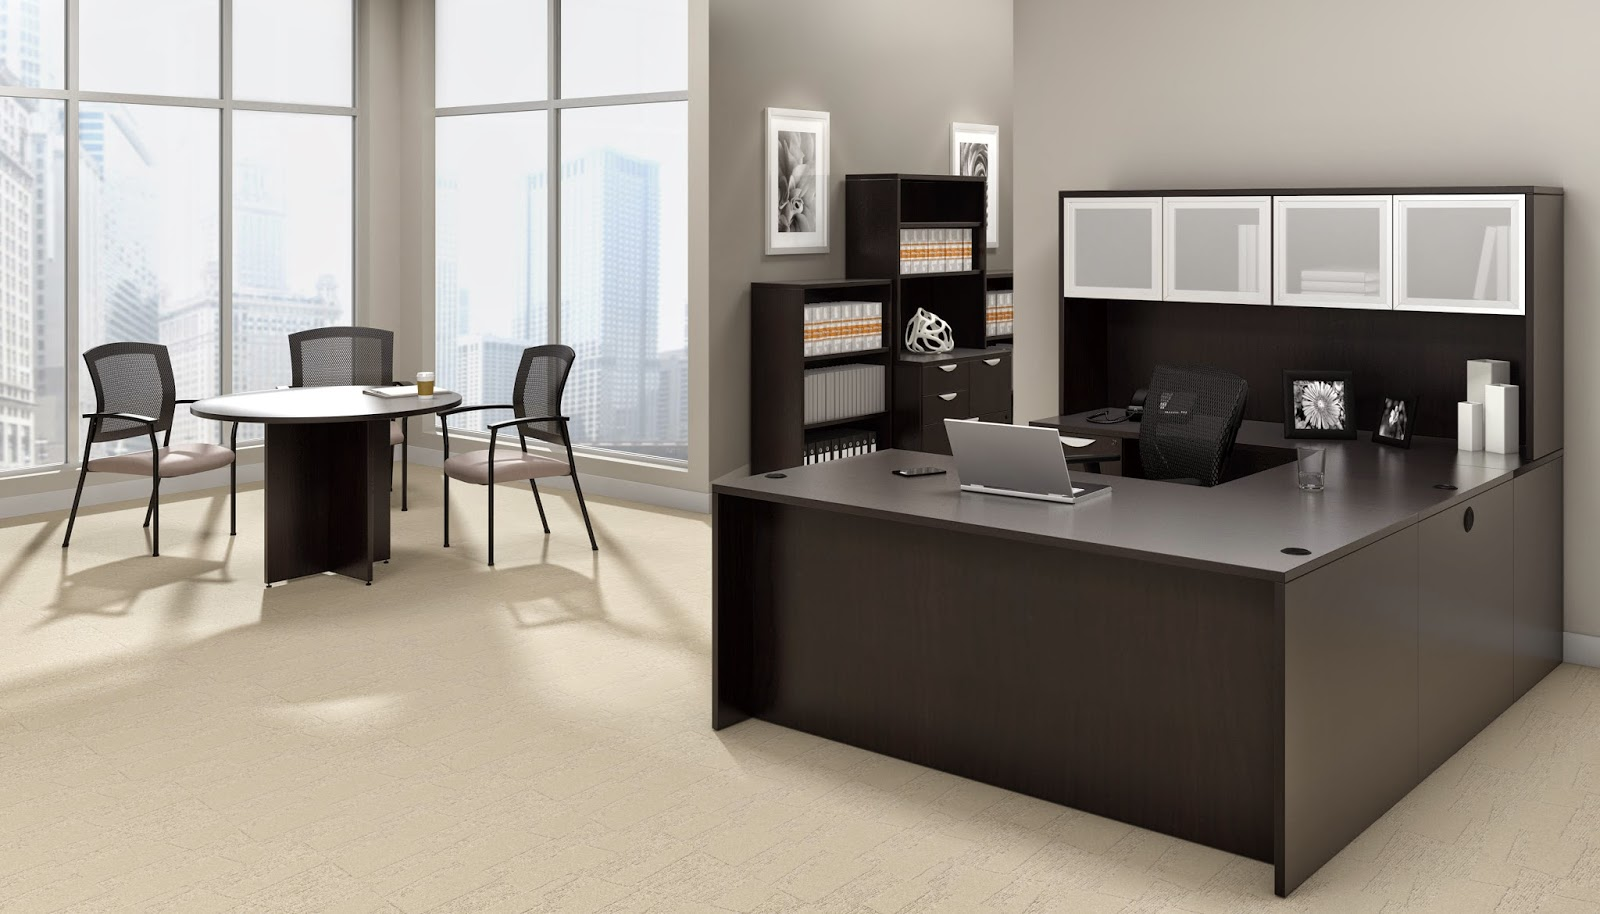 Executive Office Interior